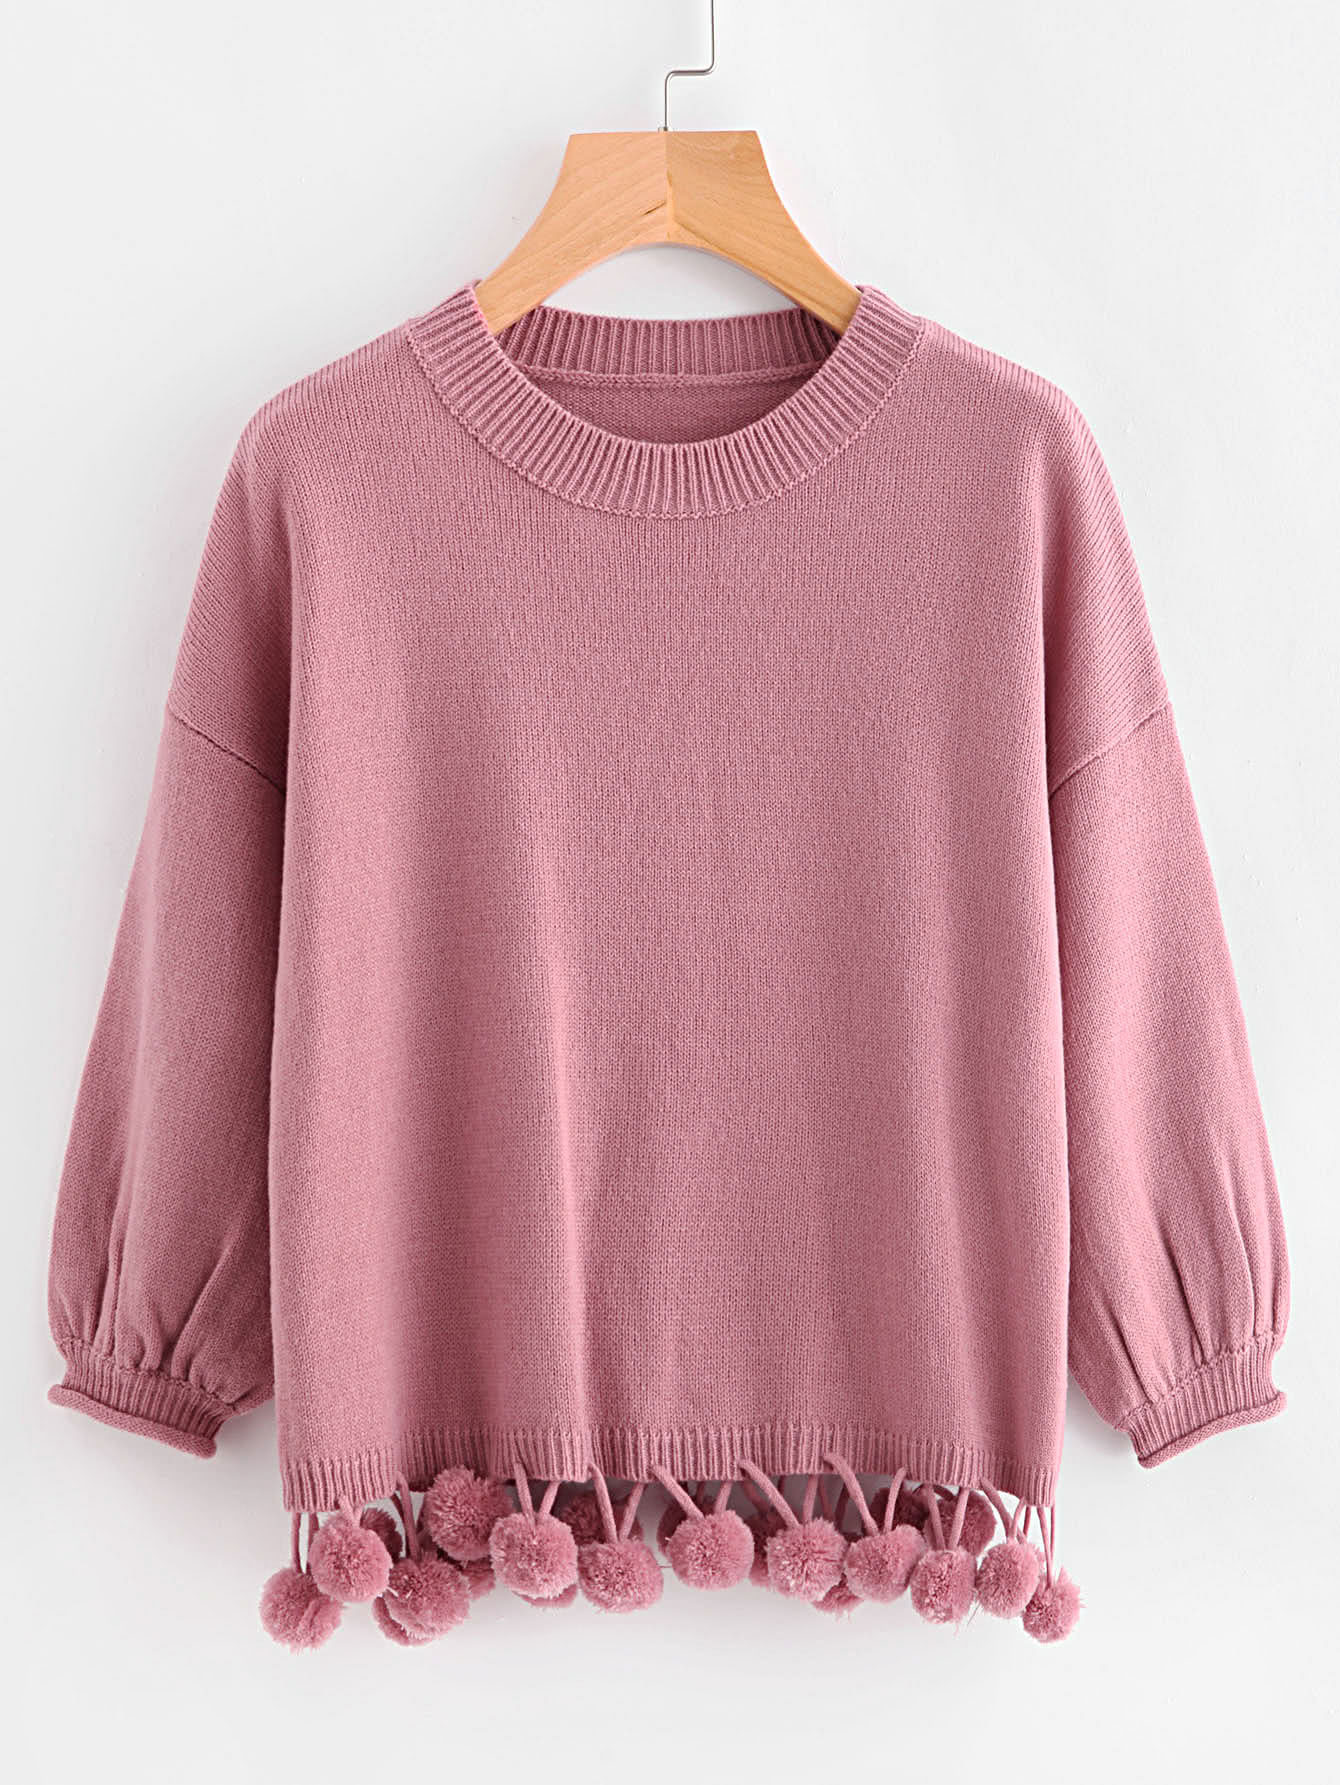 Lantern Sleeve Pom Pom Trim Jumper open shoulder pom pom trim top